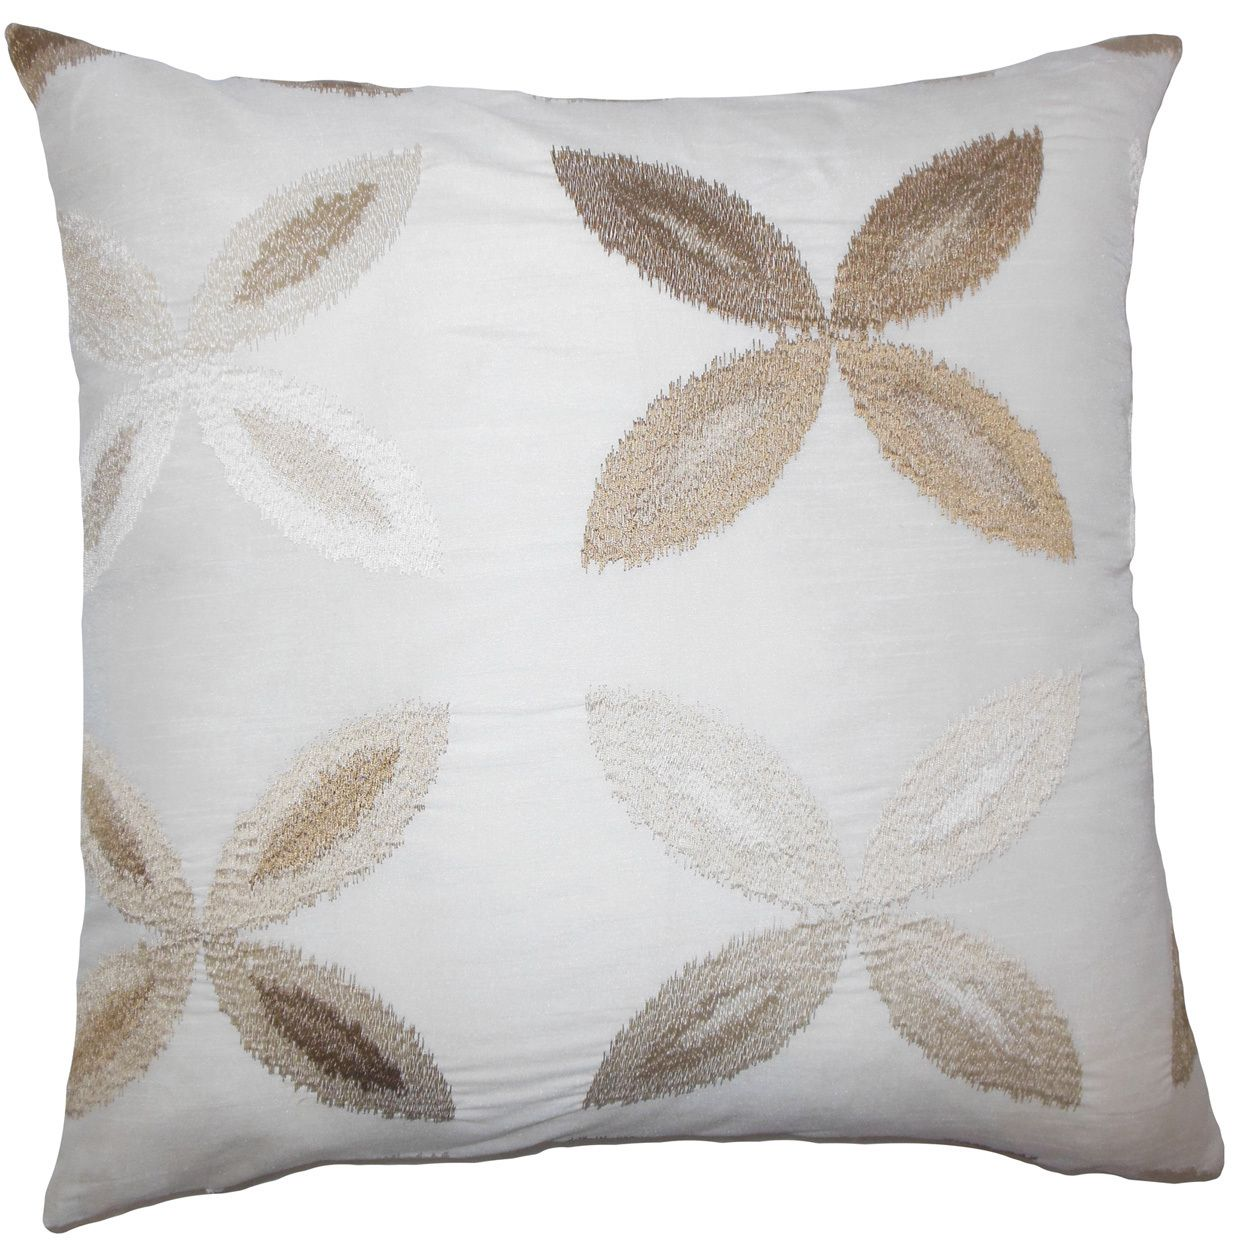 Syshe Ikat Throw Pillow Cover